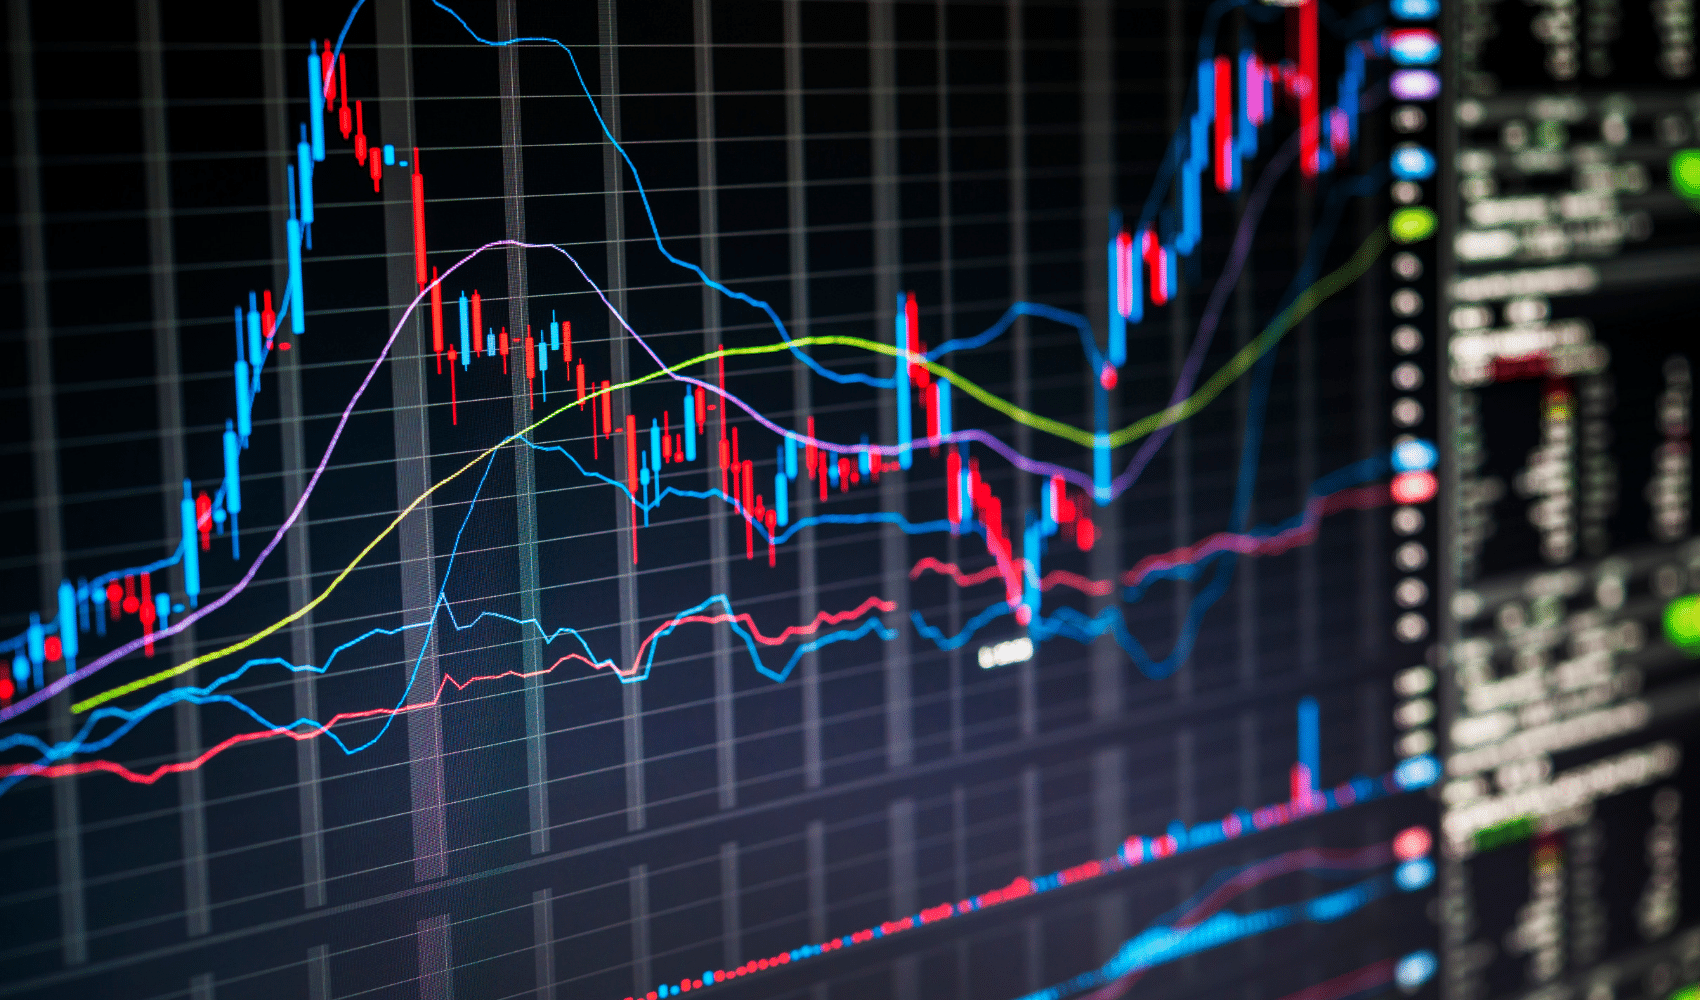 Different Cryptocurrencies in the Market